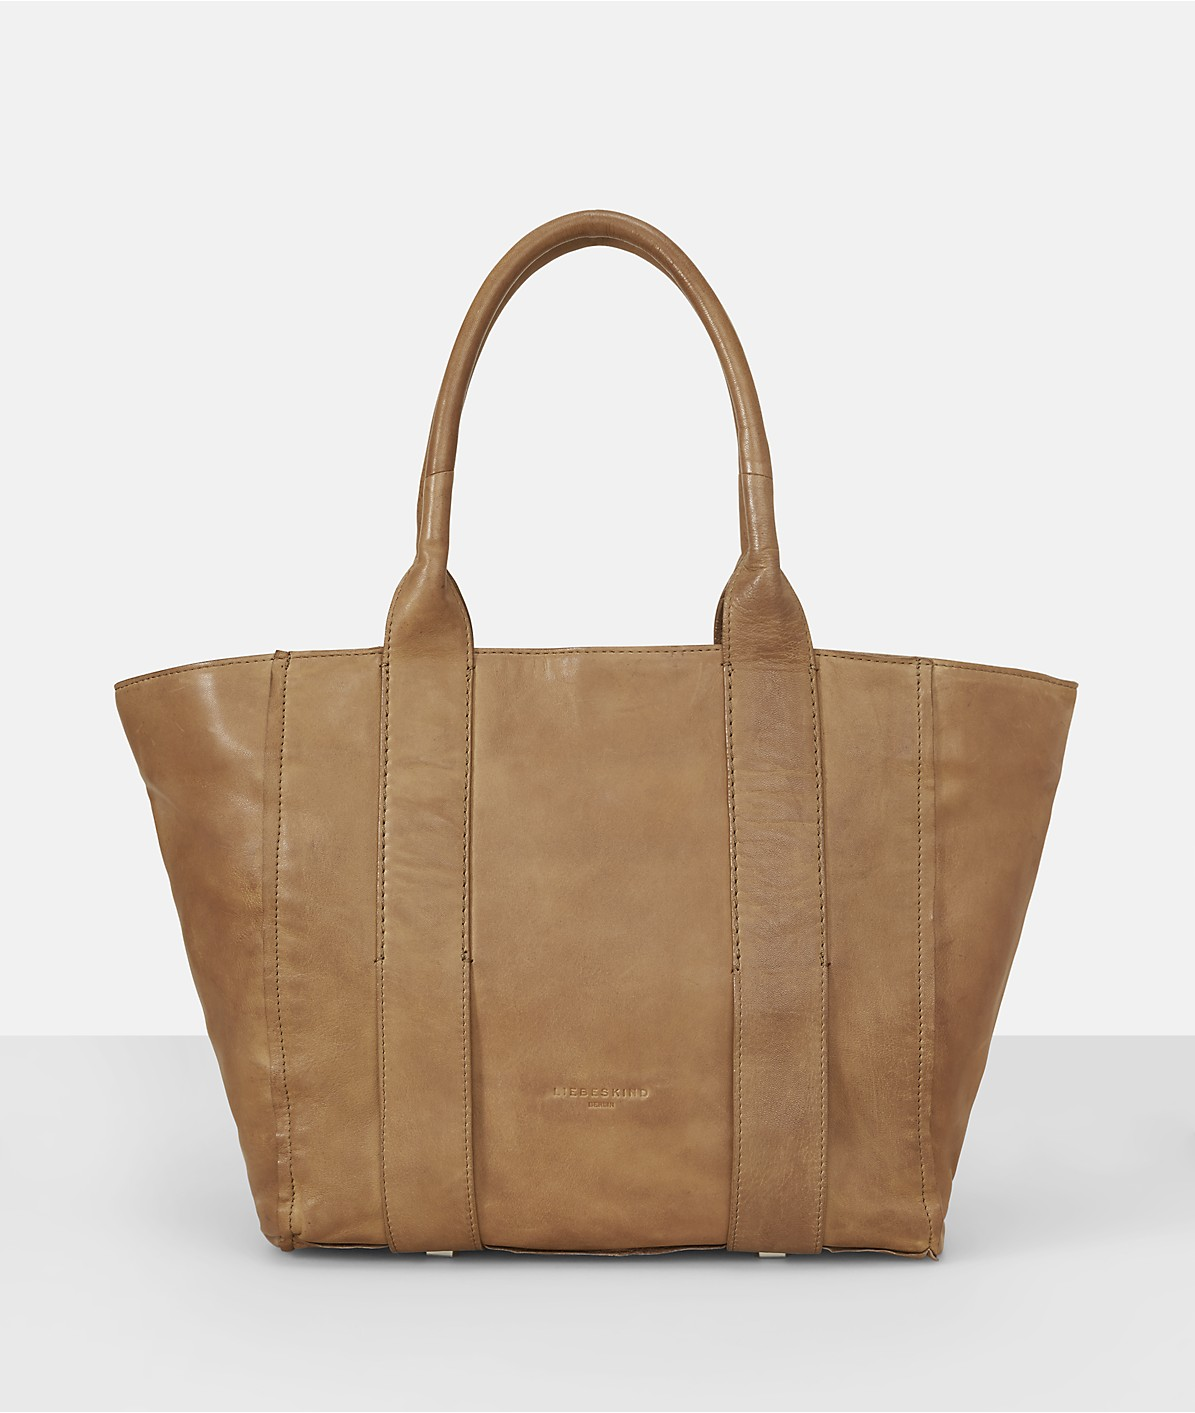 Kindi shopper from liebeskind